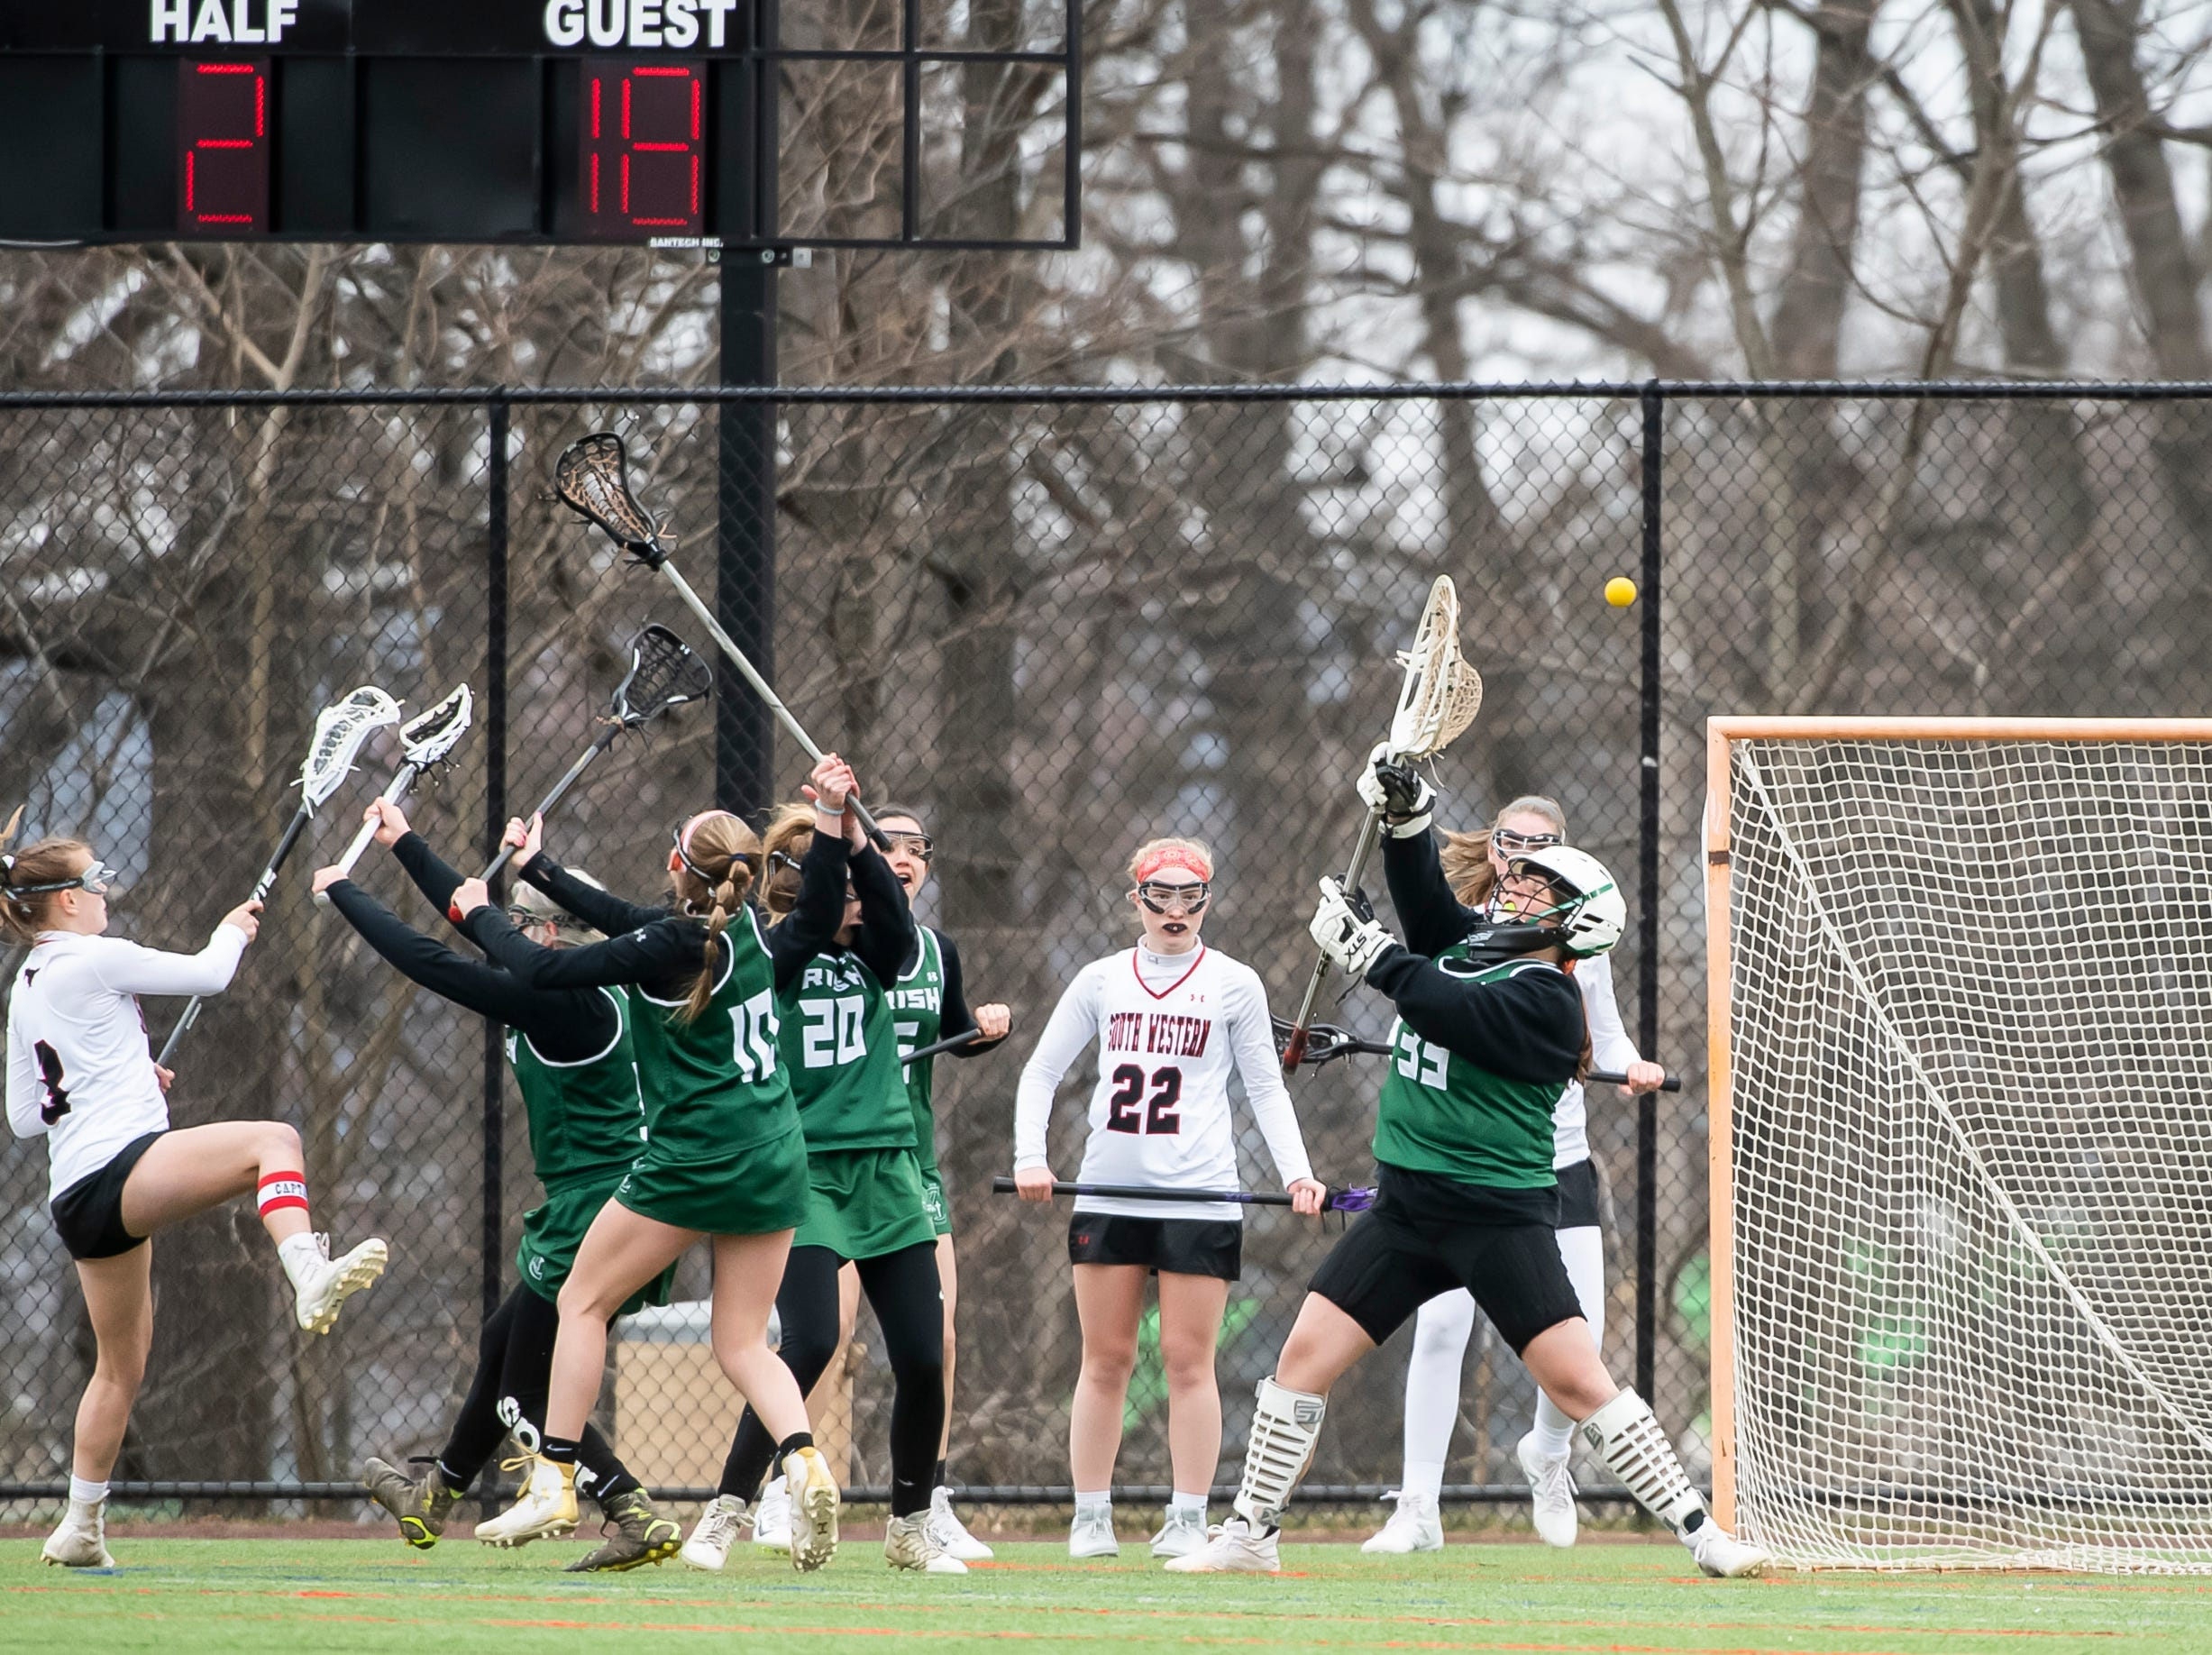 A shot from South Western's Sophie Mace just misses during a YAIAA lacrosse game against York Catholic in Hanover on Tuesday, April 2, 2019. South Western fell 19-7.